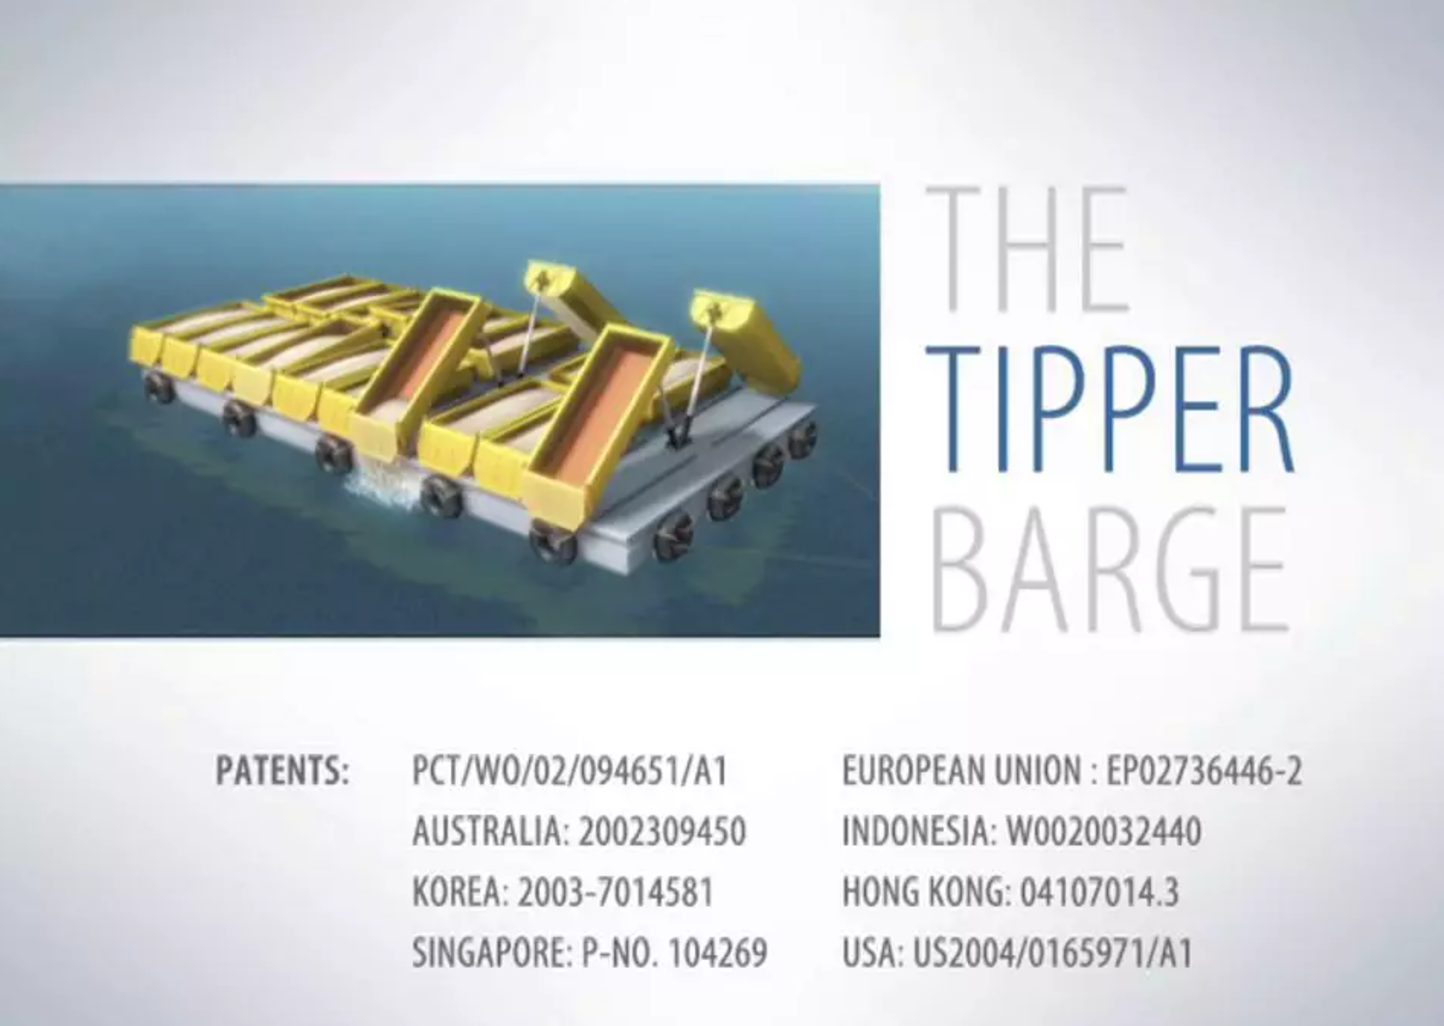 Tipper Barge